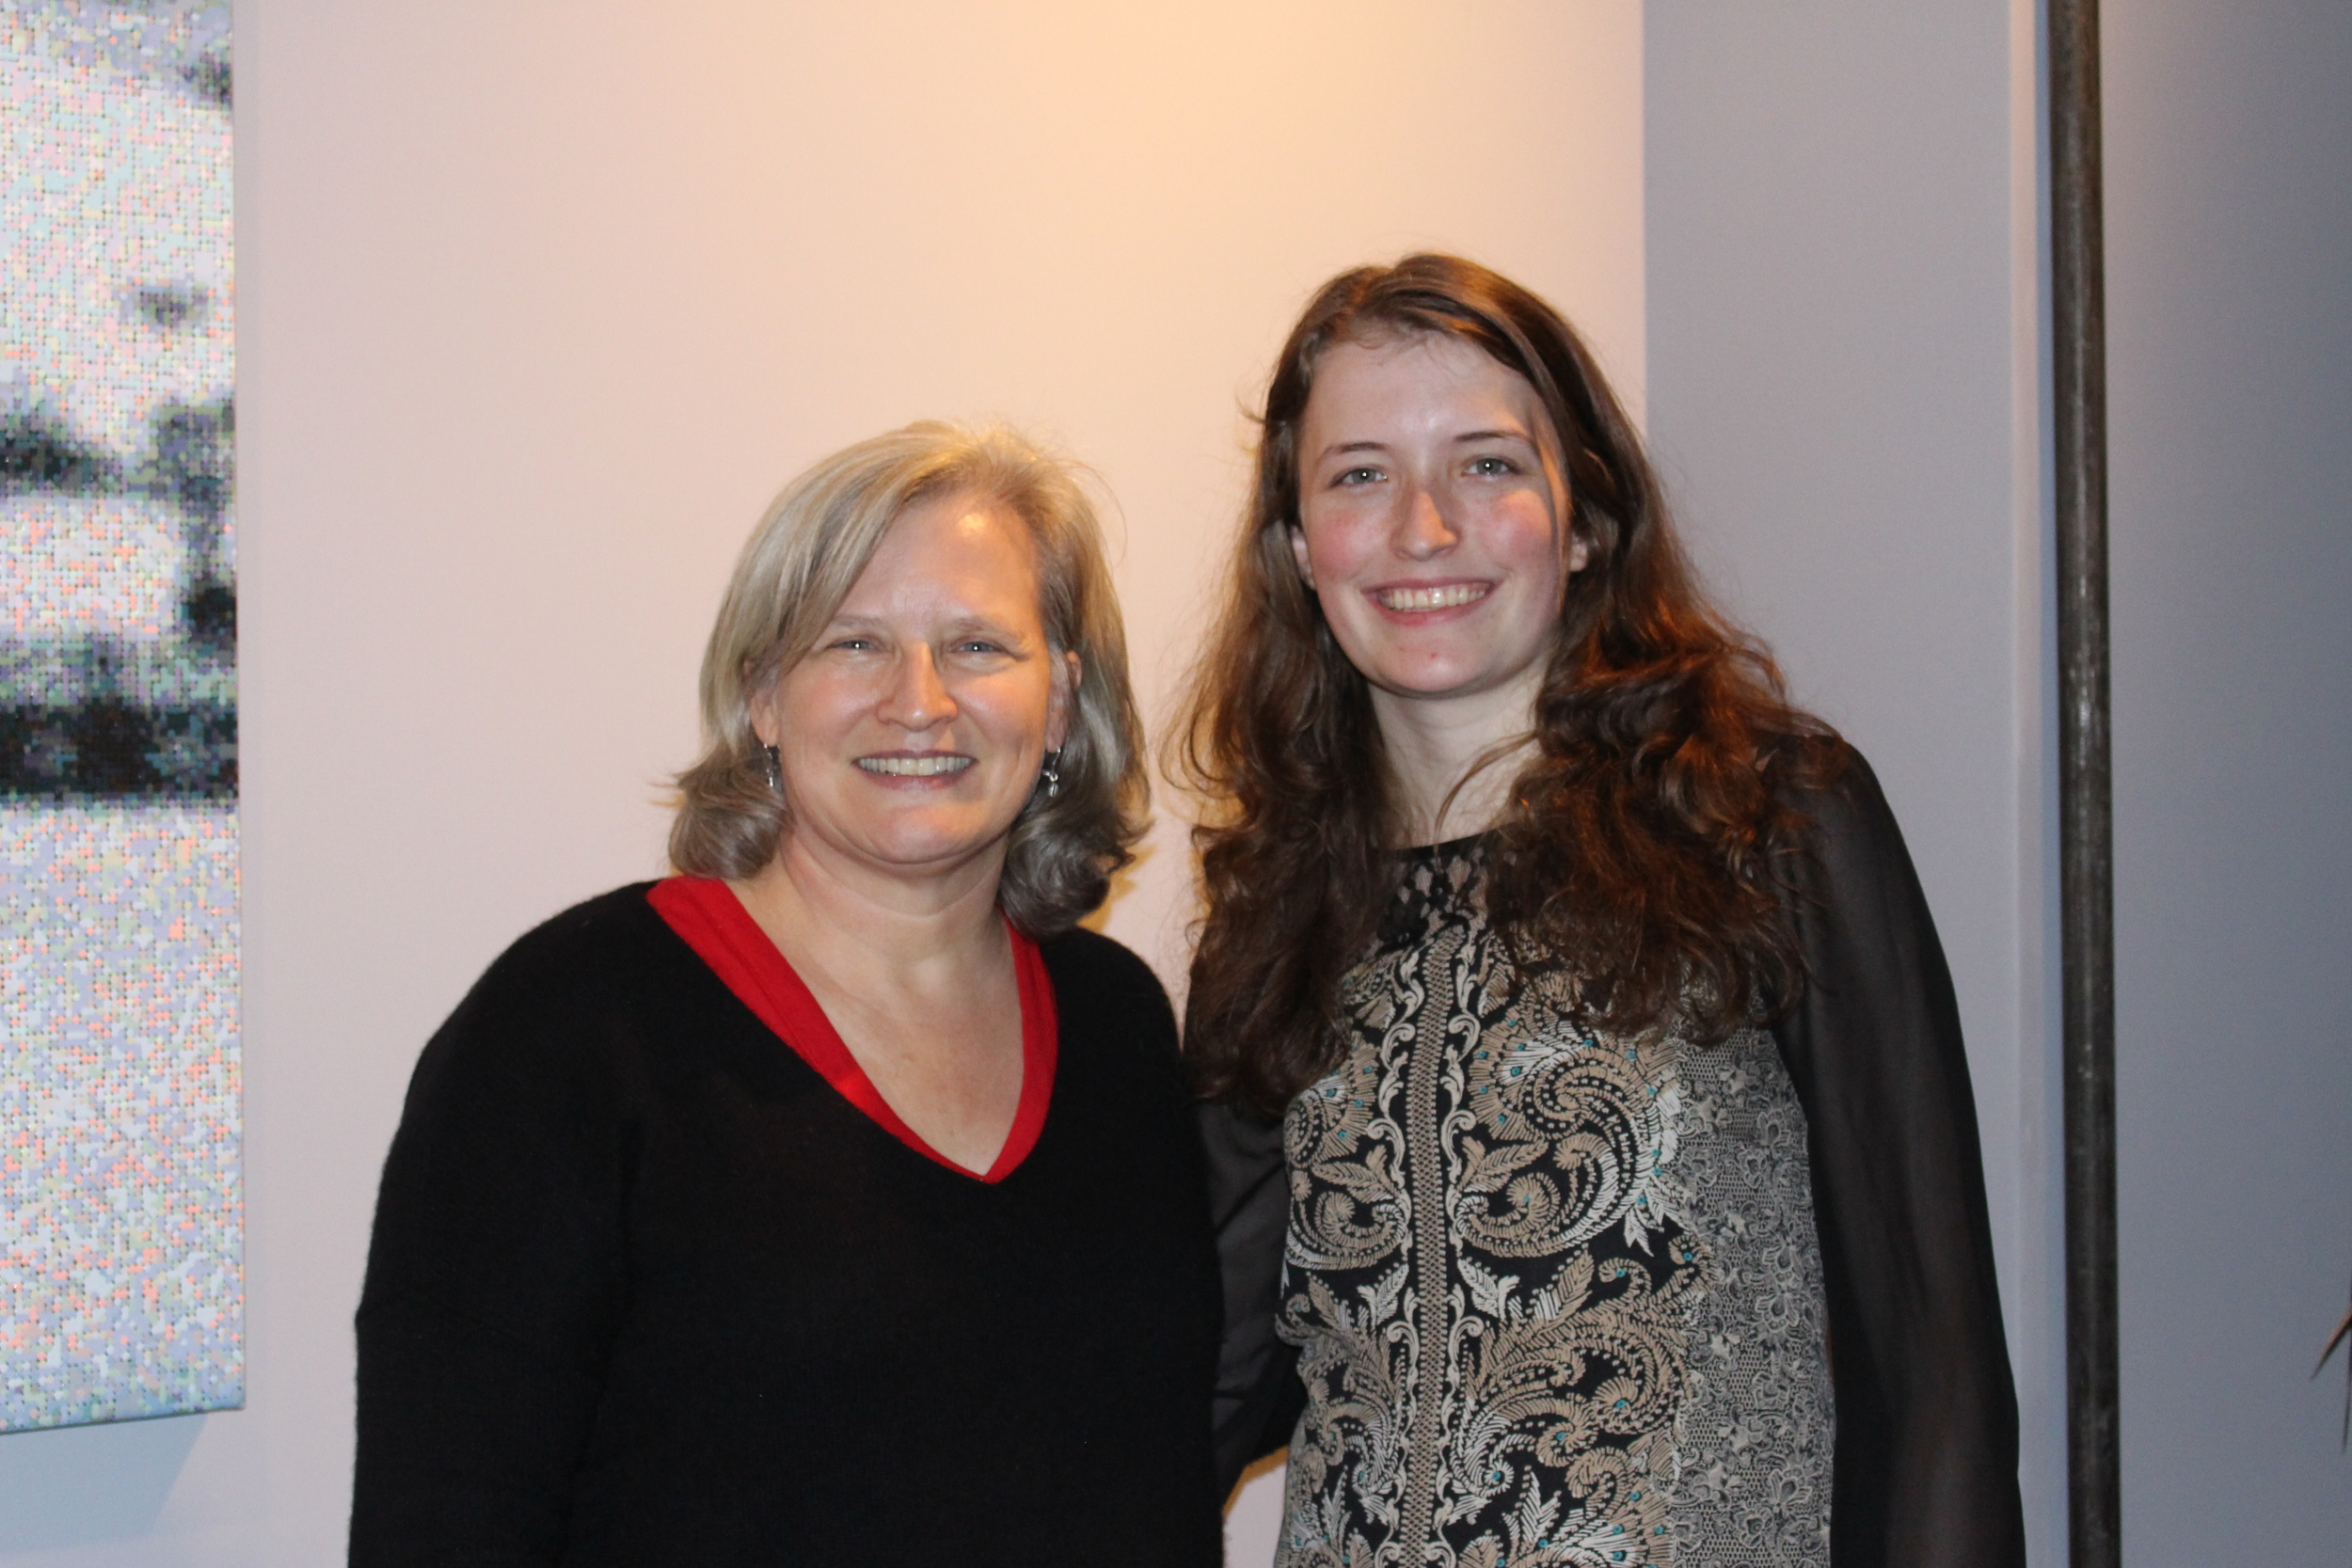 With Carrie Pieper, kindred spirit